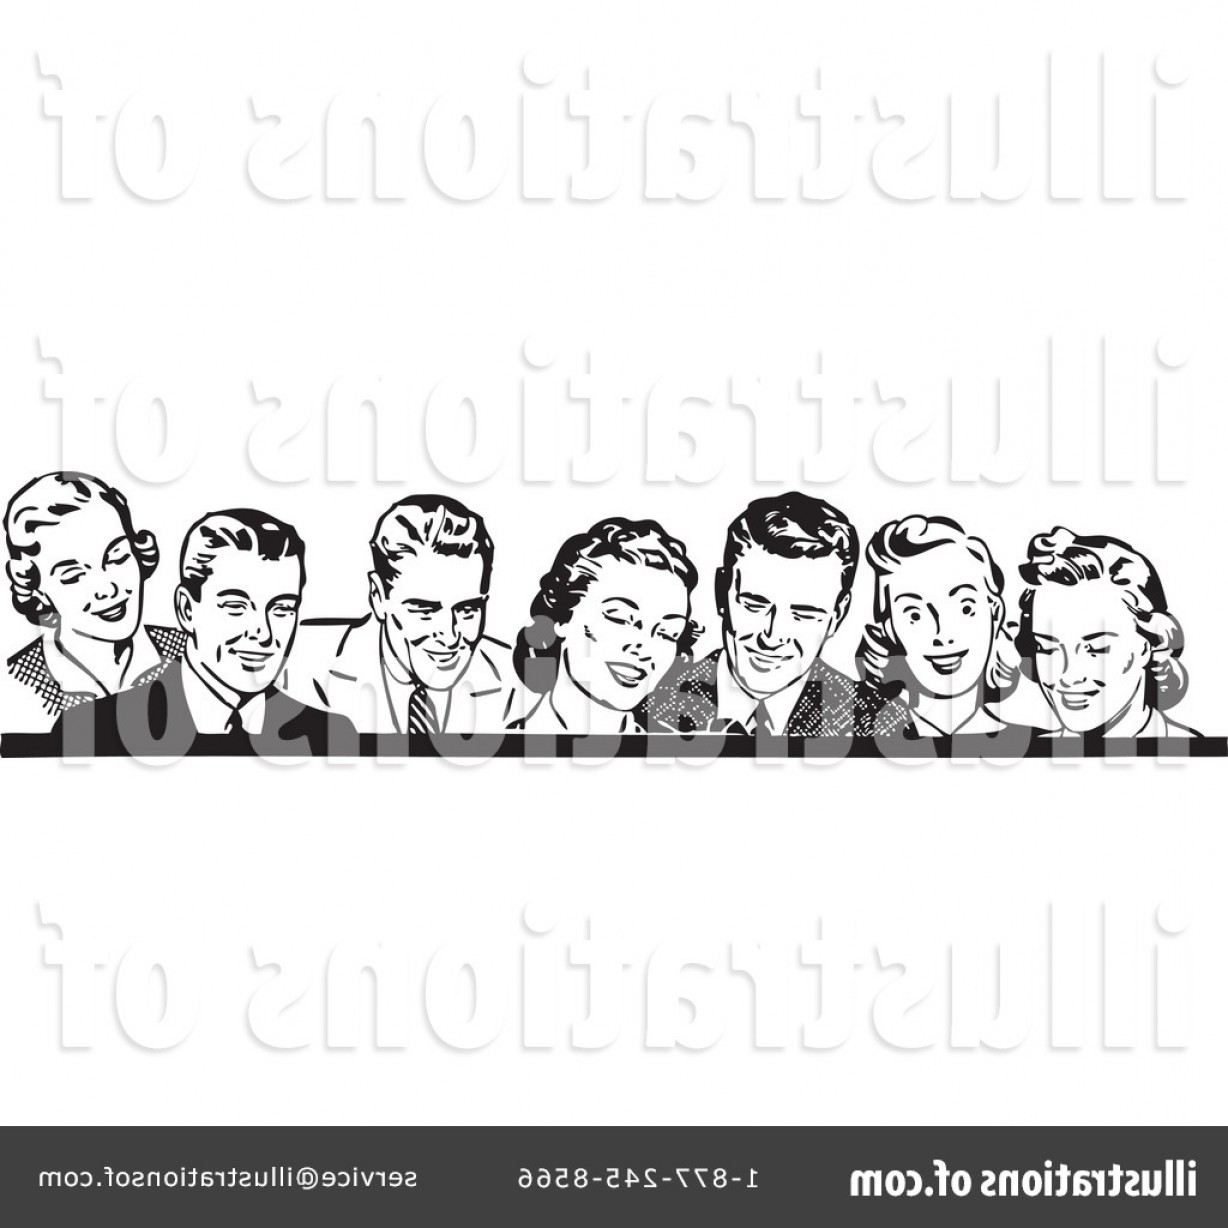 Excellent Royalty Free Retro People Clipart Illustration.